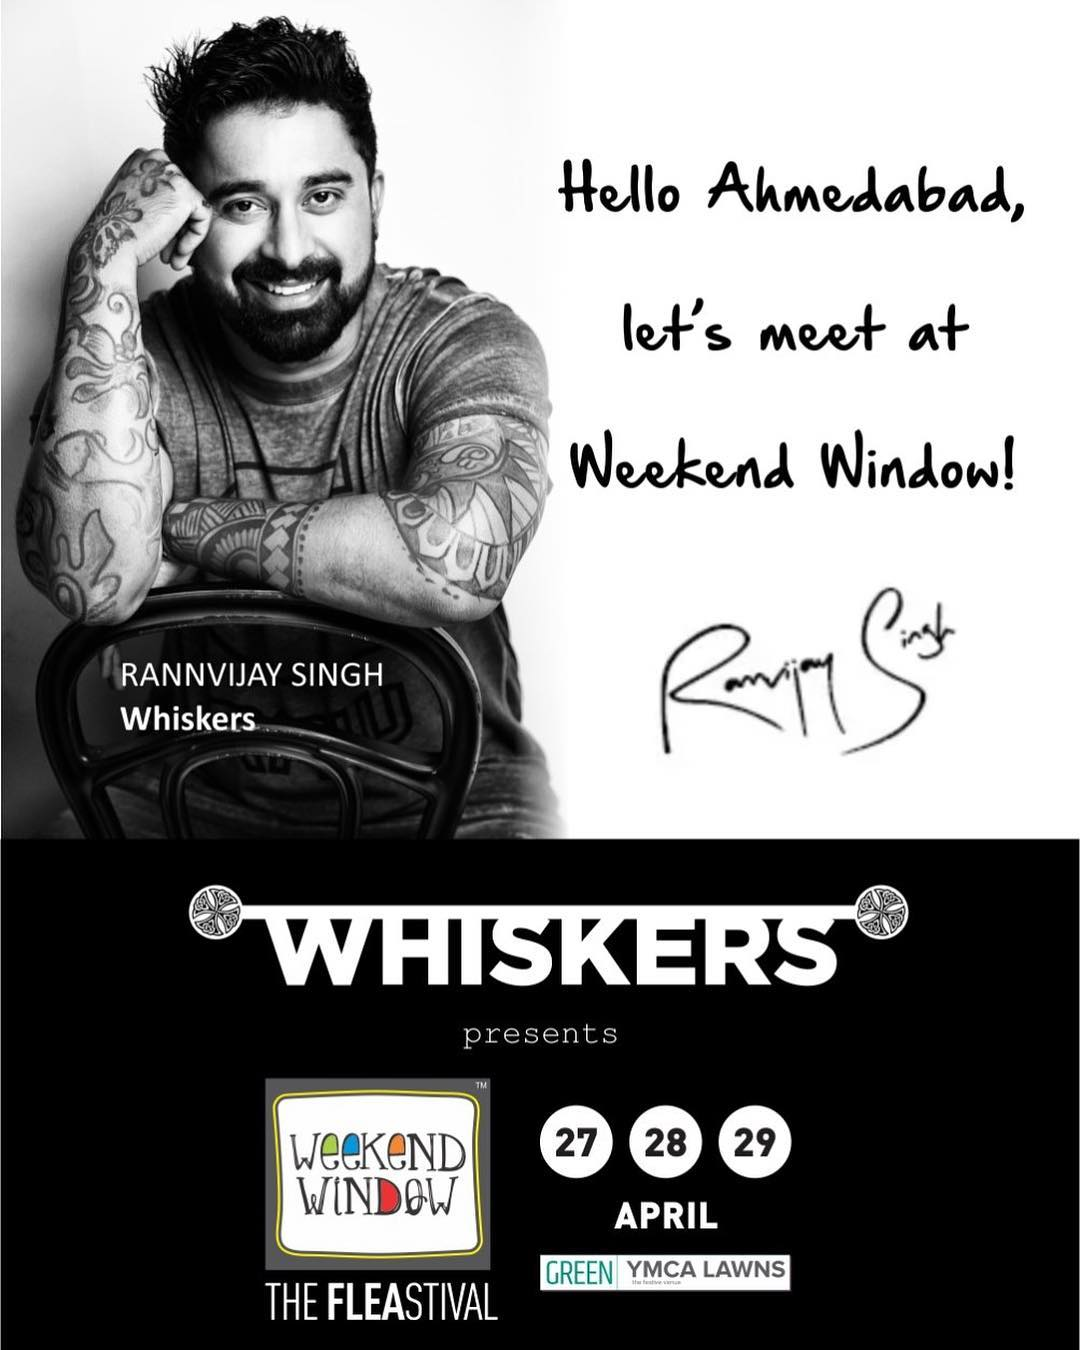 Drumrolls!!! We just can't hold our excitement! 🤩🤗🤘 Meet the true roadie, @rannvijaysingha ONLY at the biggest and happiest FLEAstival, Weekend Window presented by @whiskersformen  #weekendwindow #fleastival #RannvijaySingh #Whiskers #shop #meetandgreet #food #music #entertainment